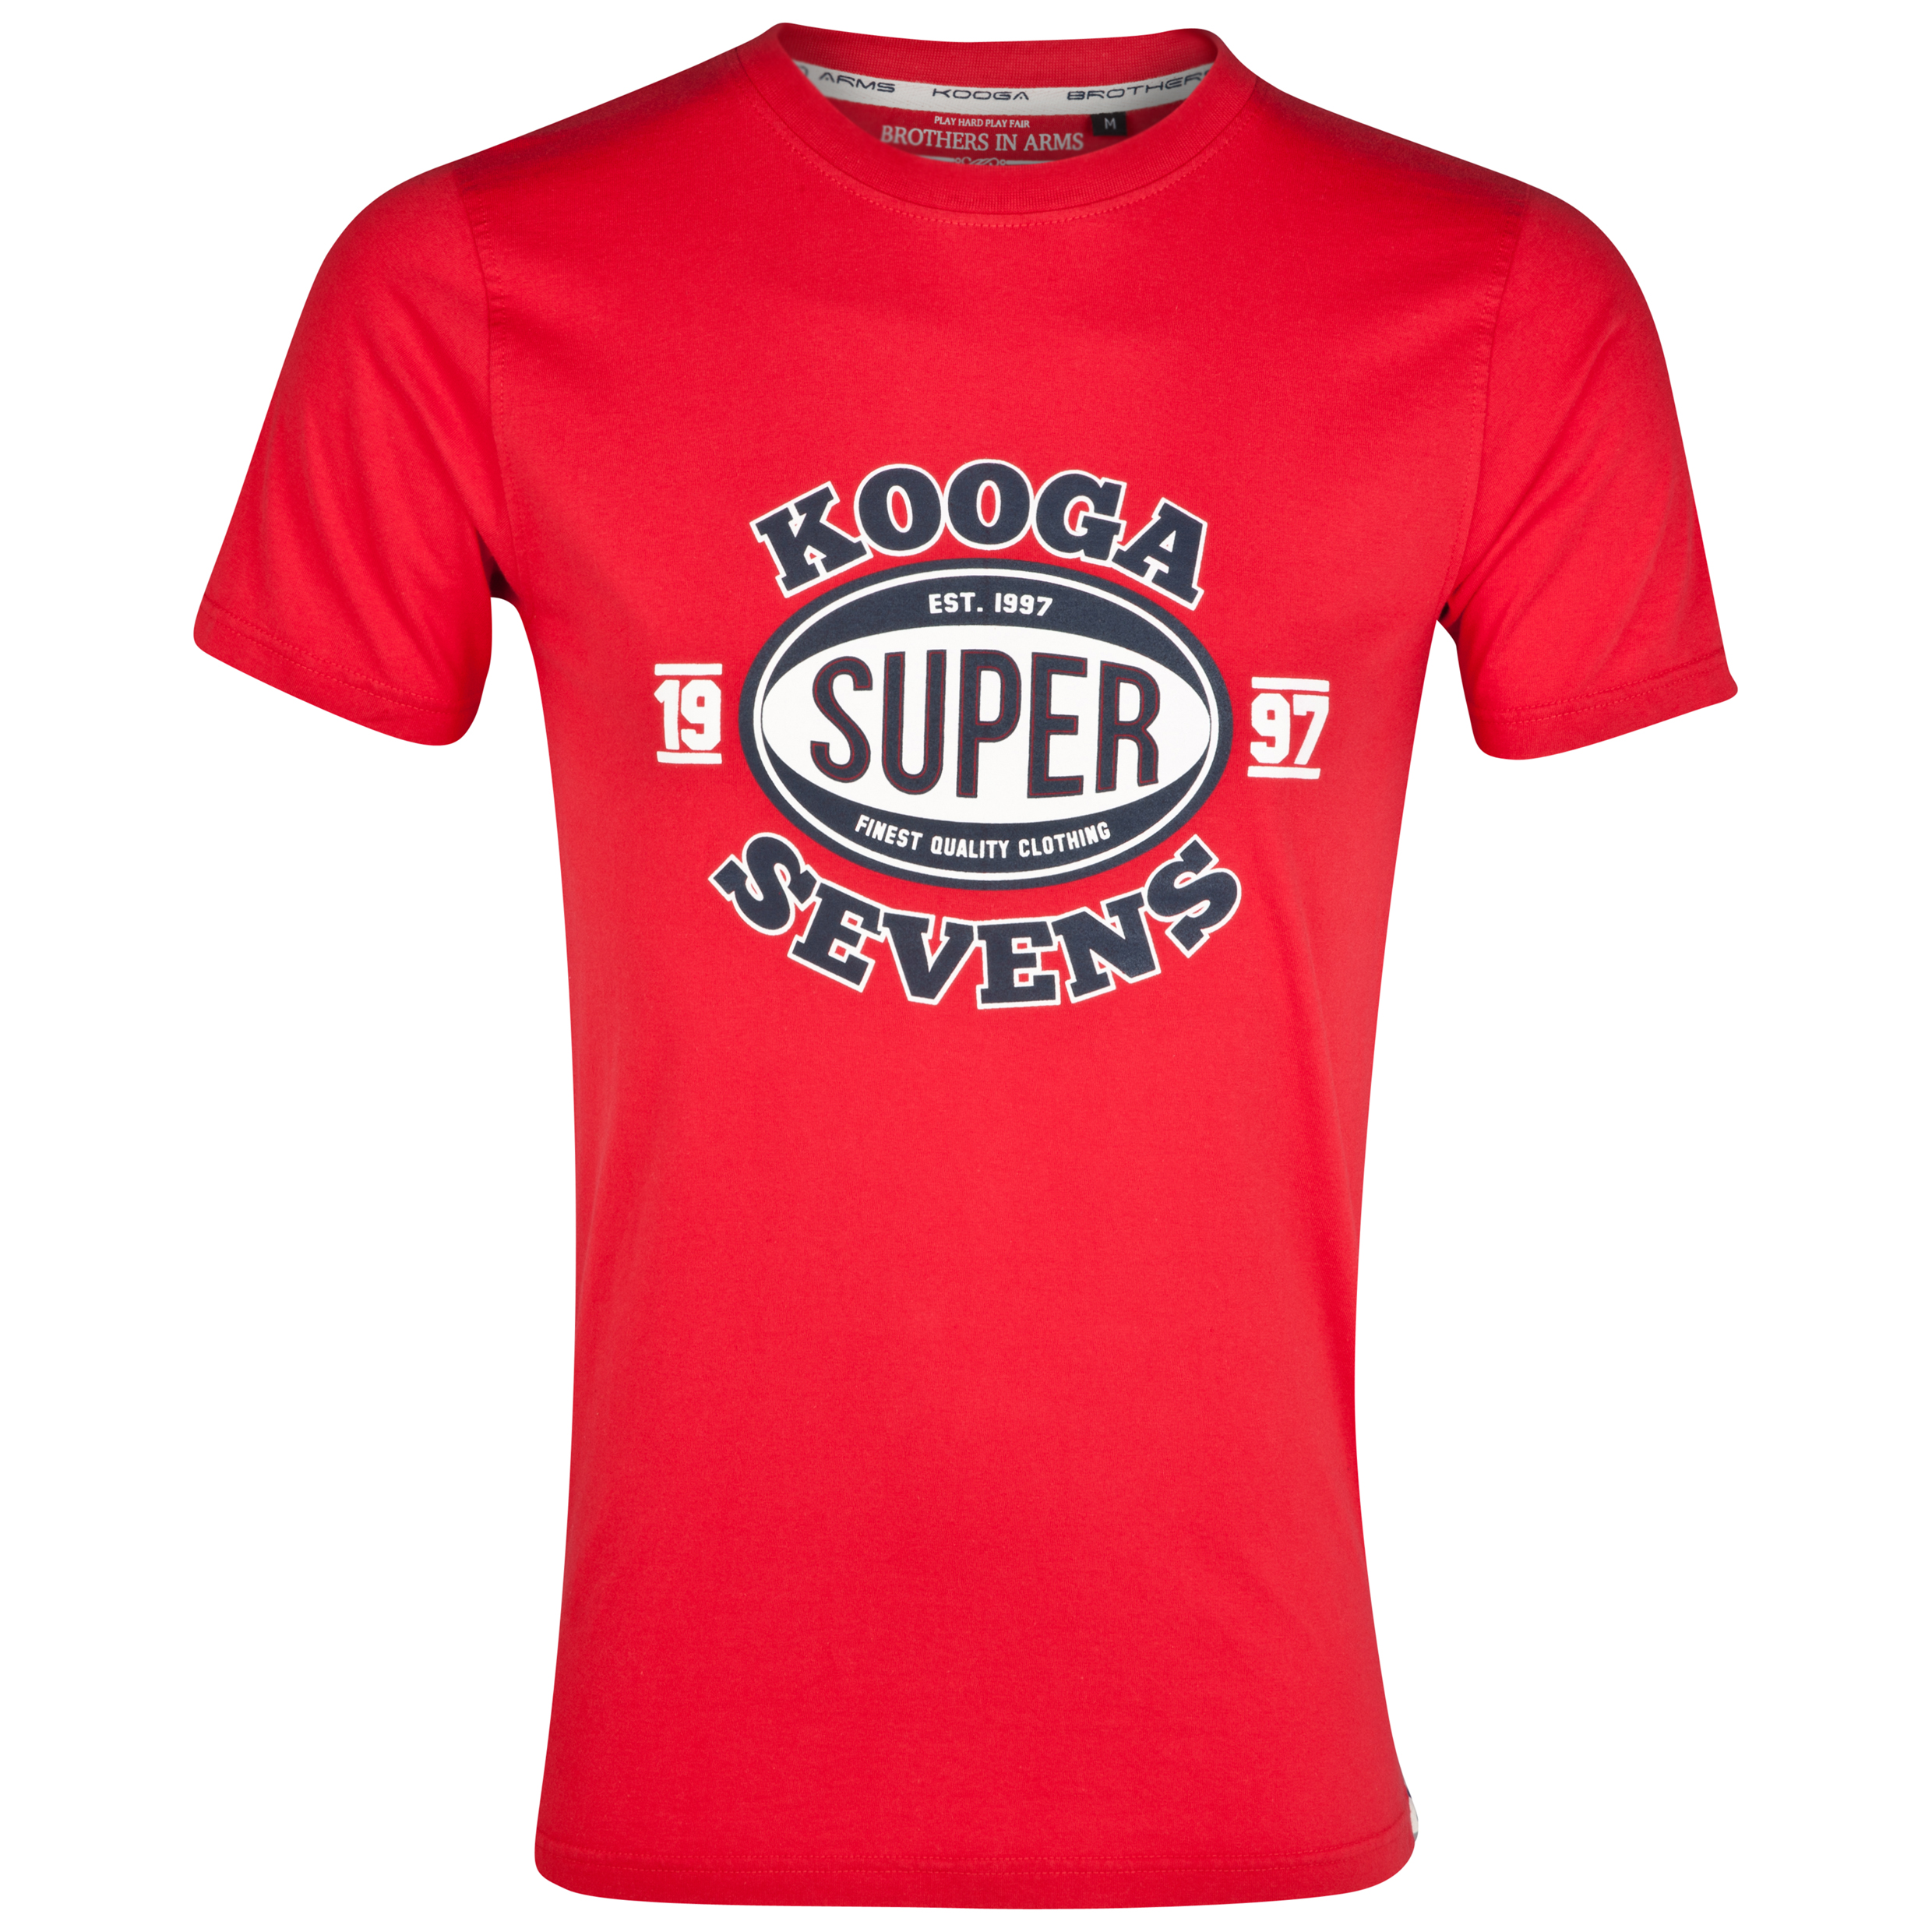 Kooga T-Shirt - Bright Red